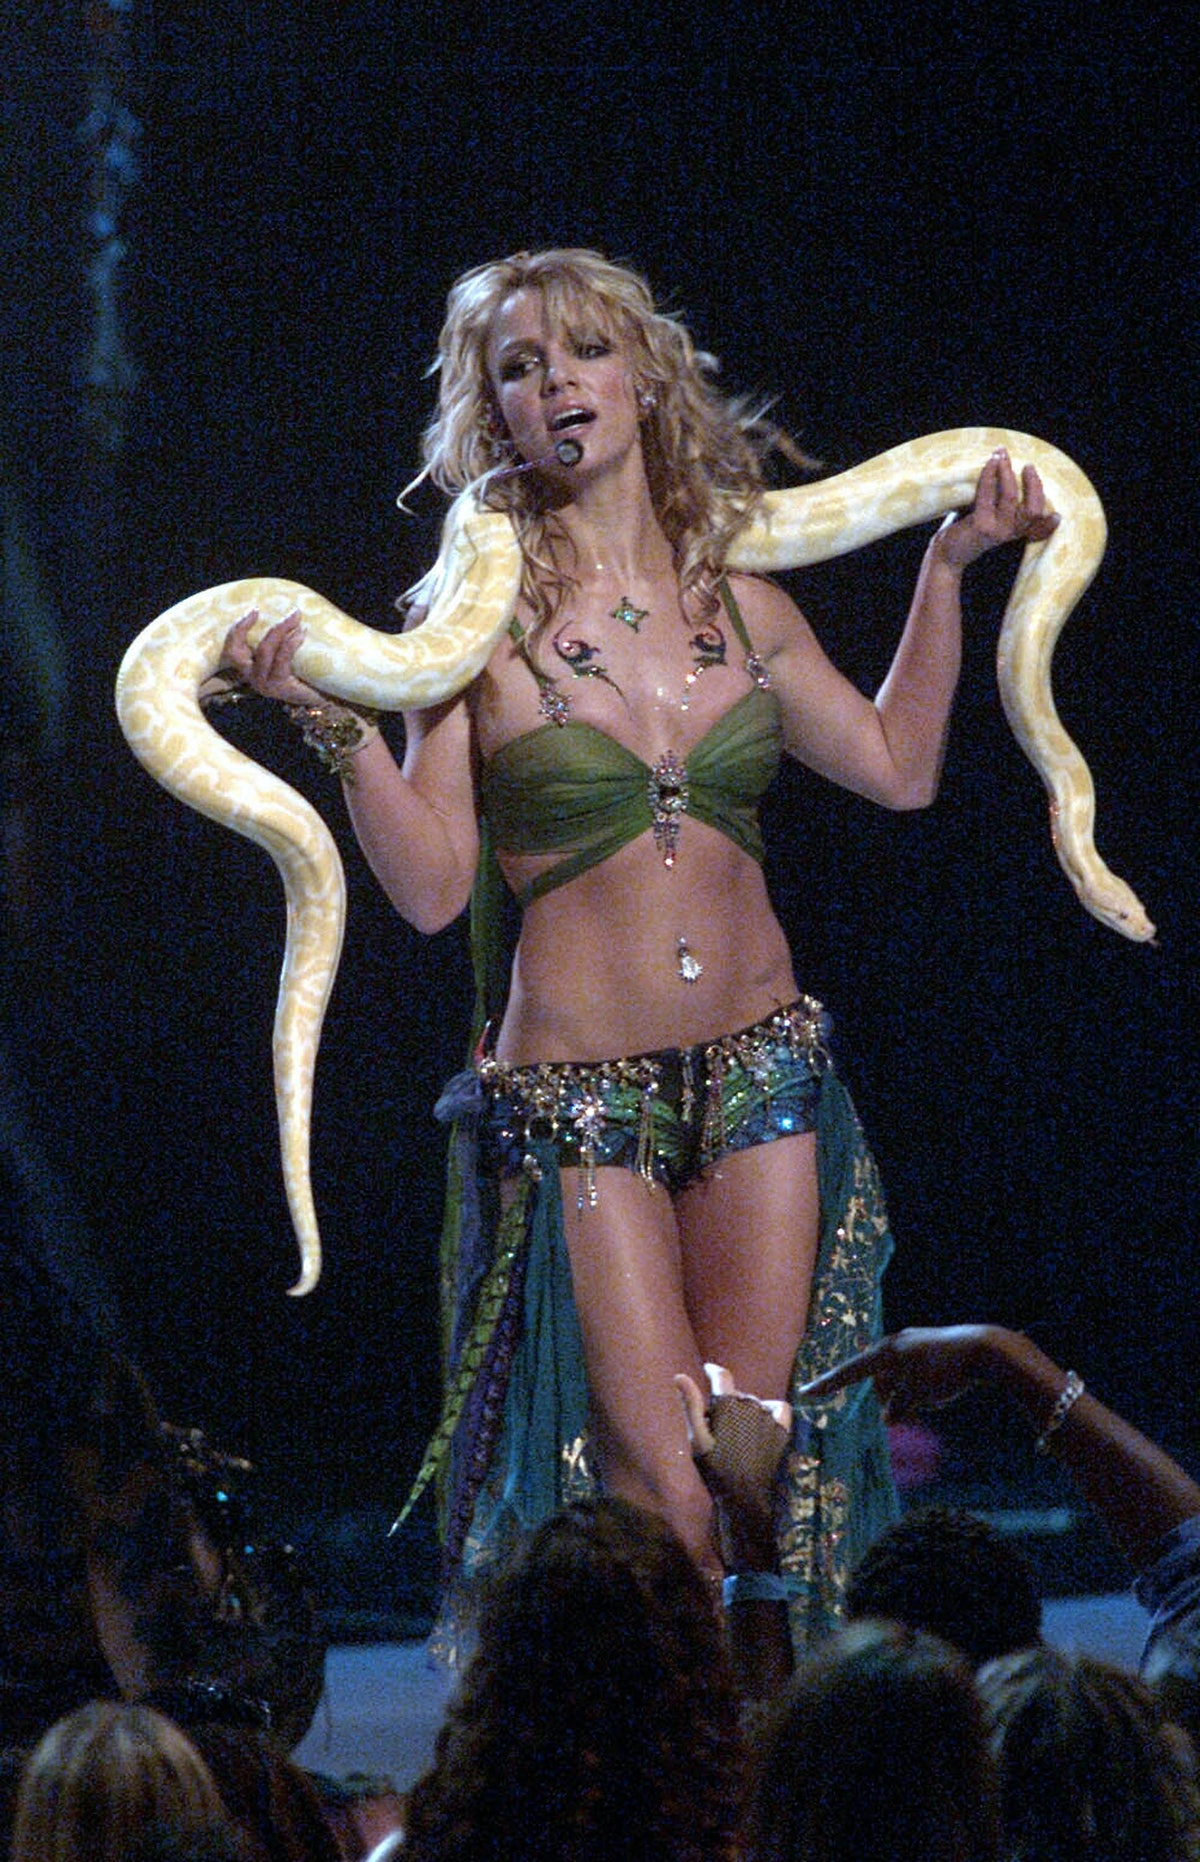 NEW YORK - SEPTEMBER 6: American pop star Britney Spears performs on stage at the 2001 MTV Video Music Awards held at the Metropolitan Opera House at the Lincoln Center on September 6, 2001 in New York City. (Photo by Dave Hogan/Getty Images)